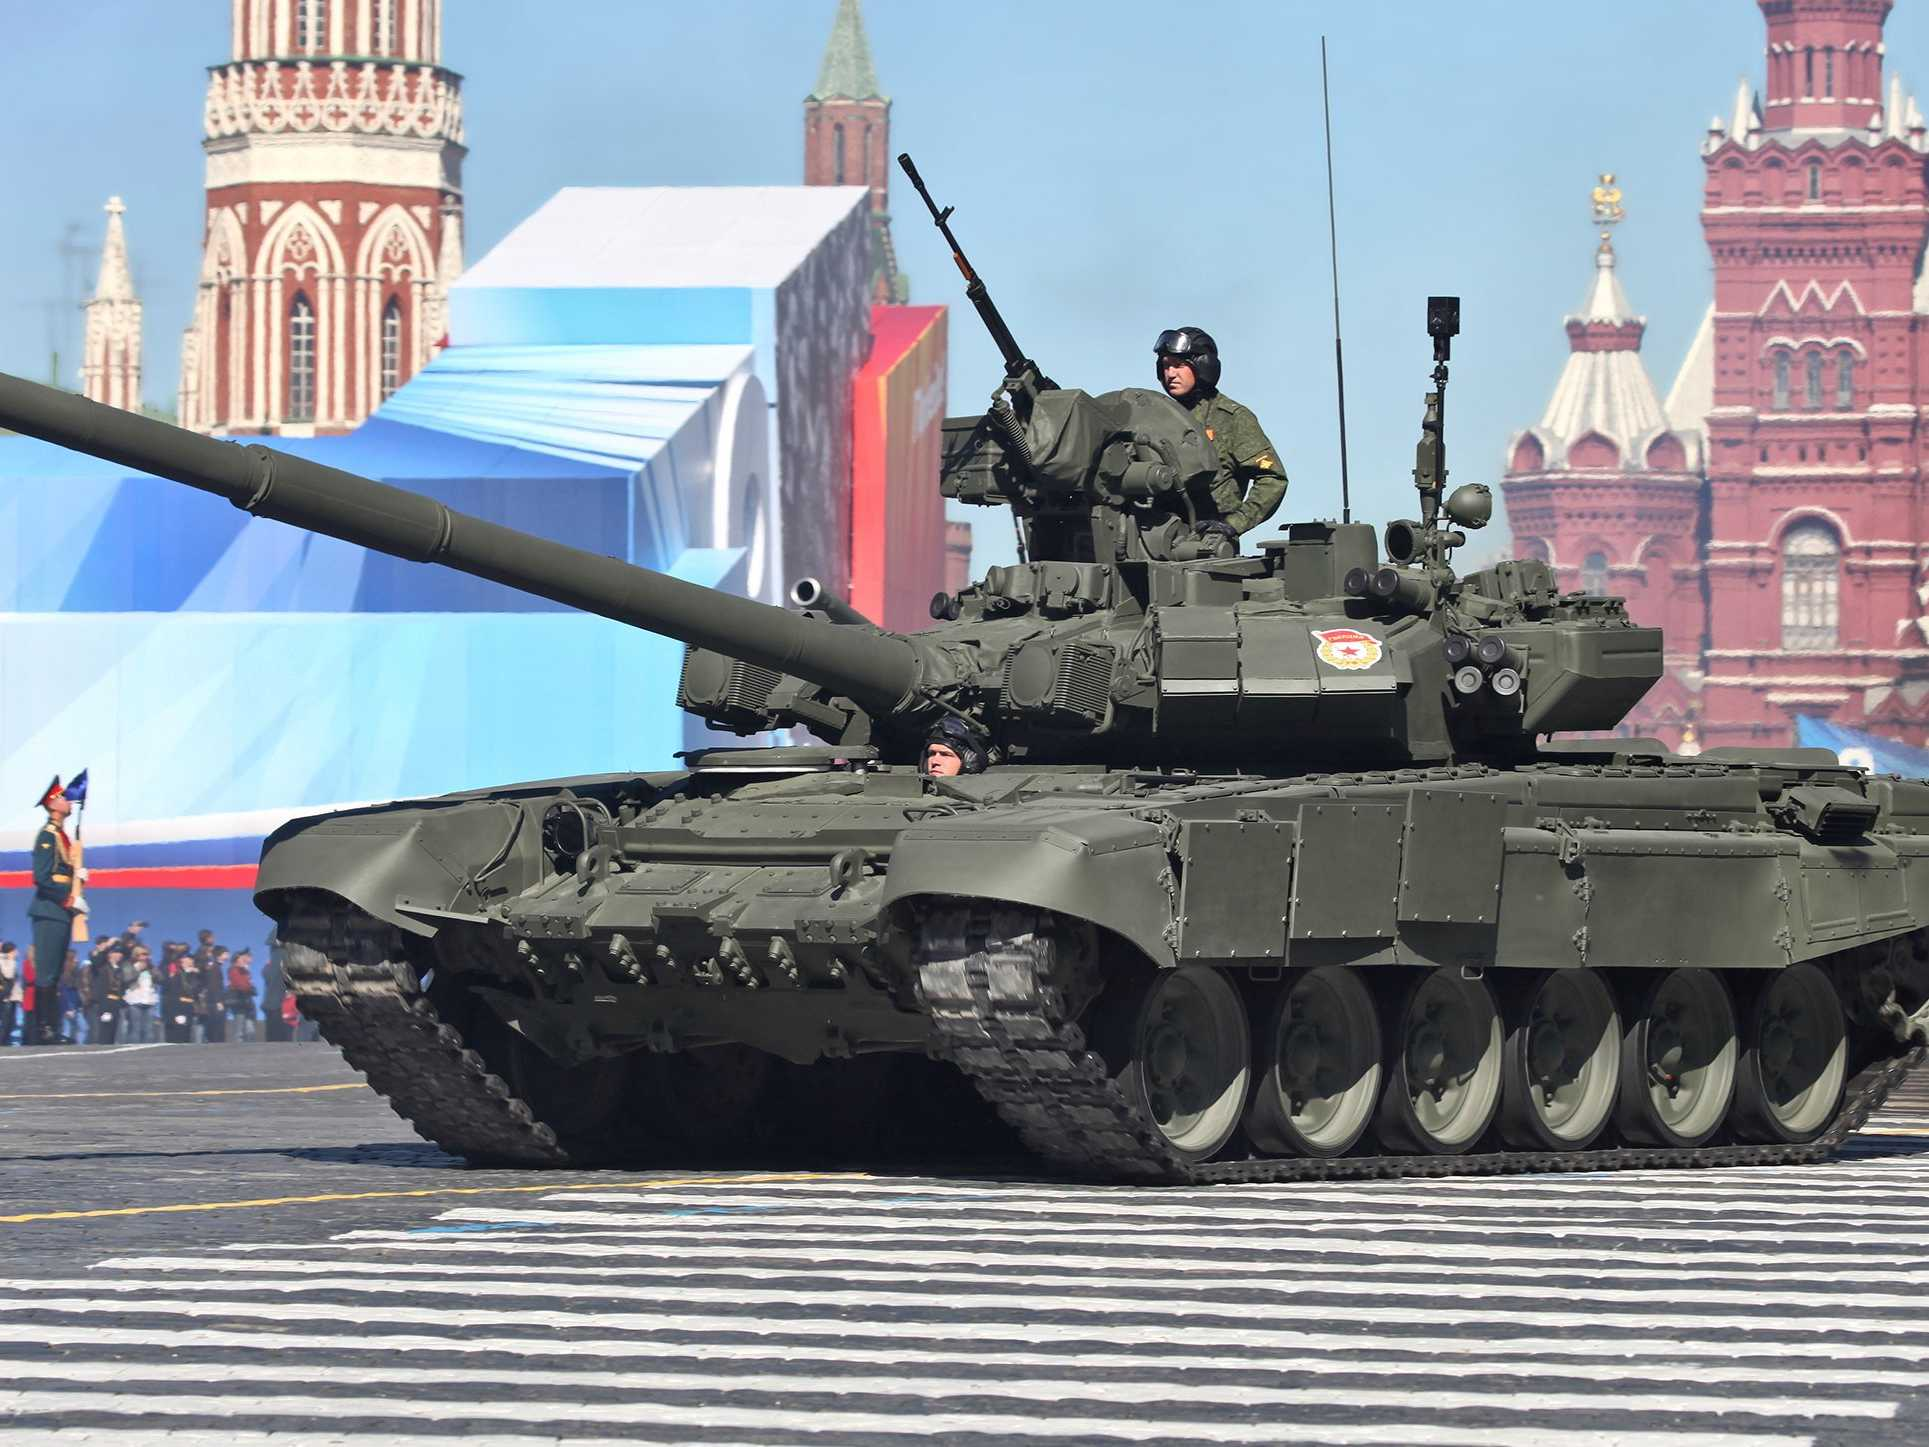 These are the tanks Russia is setting up in Syria